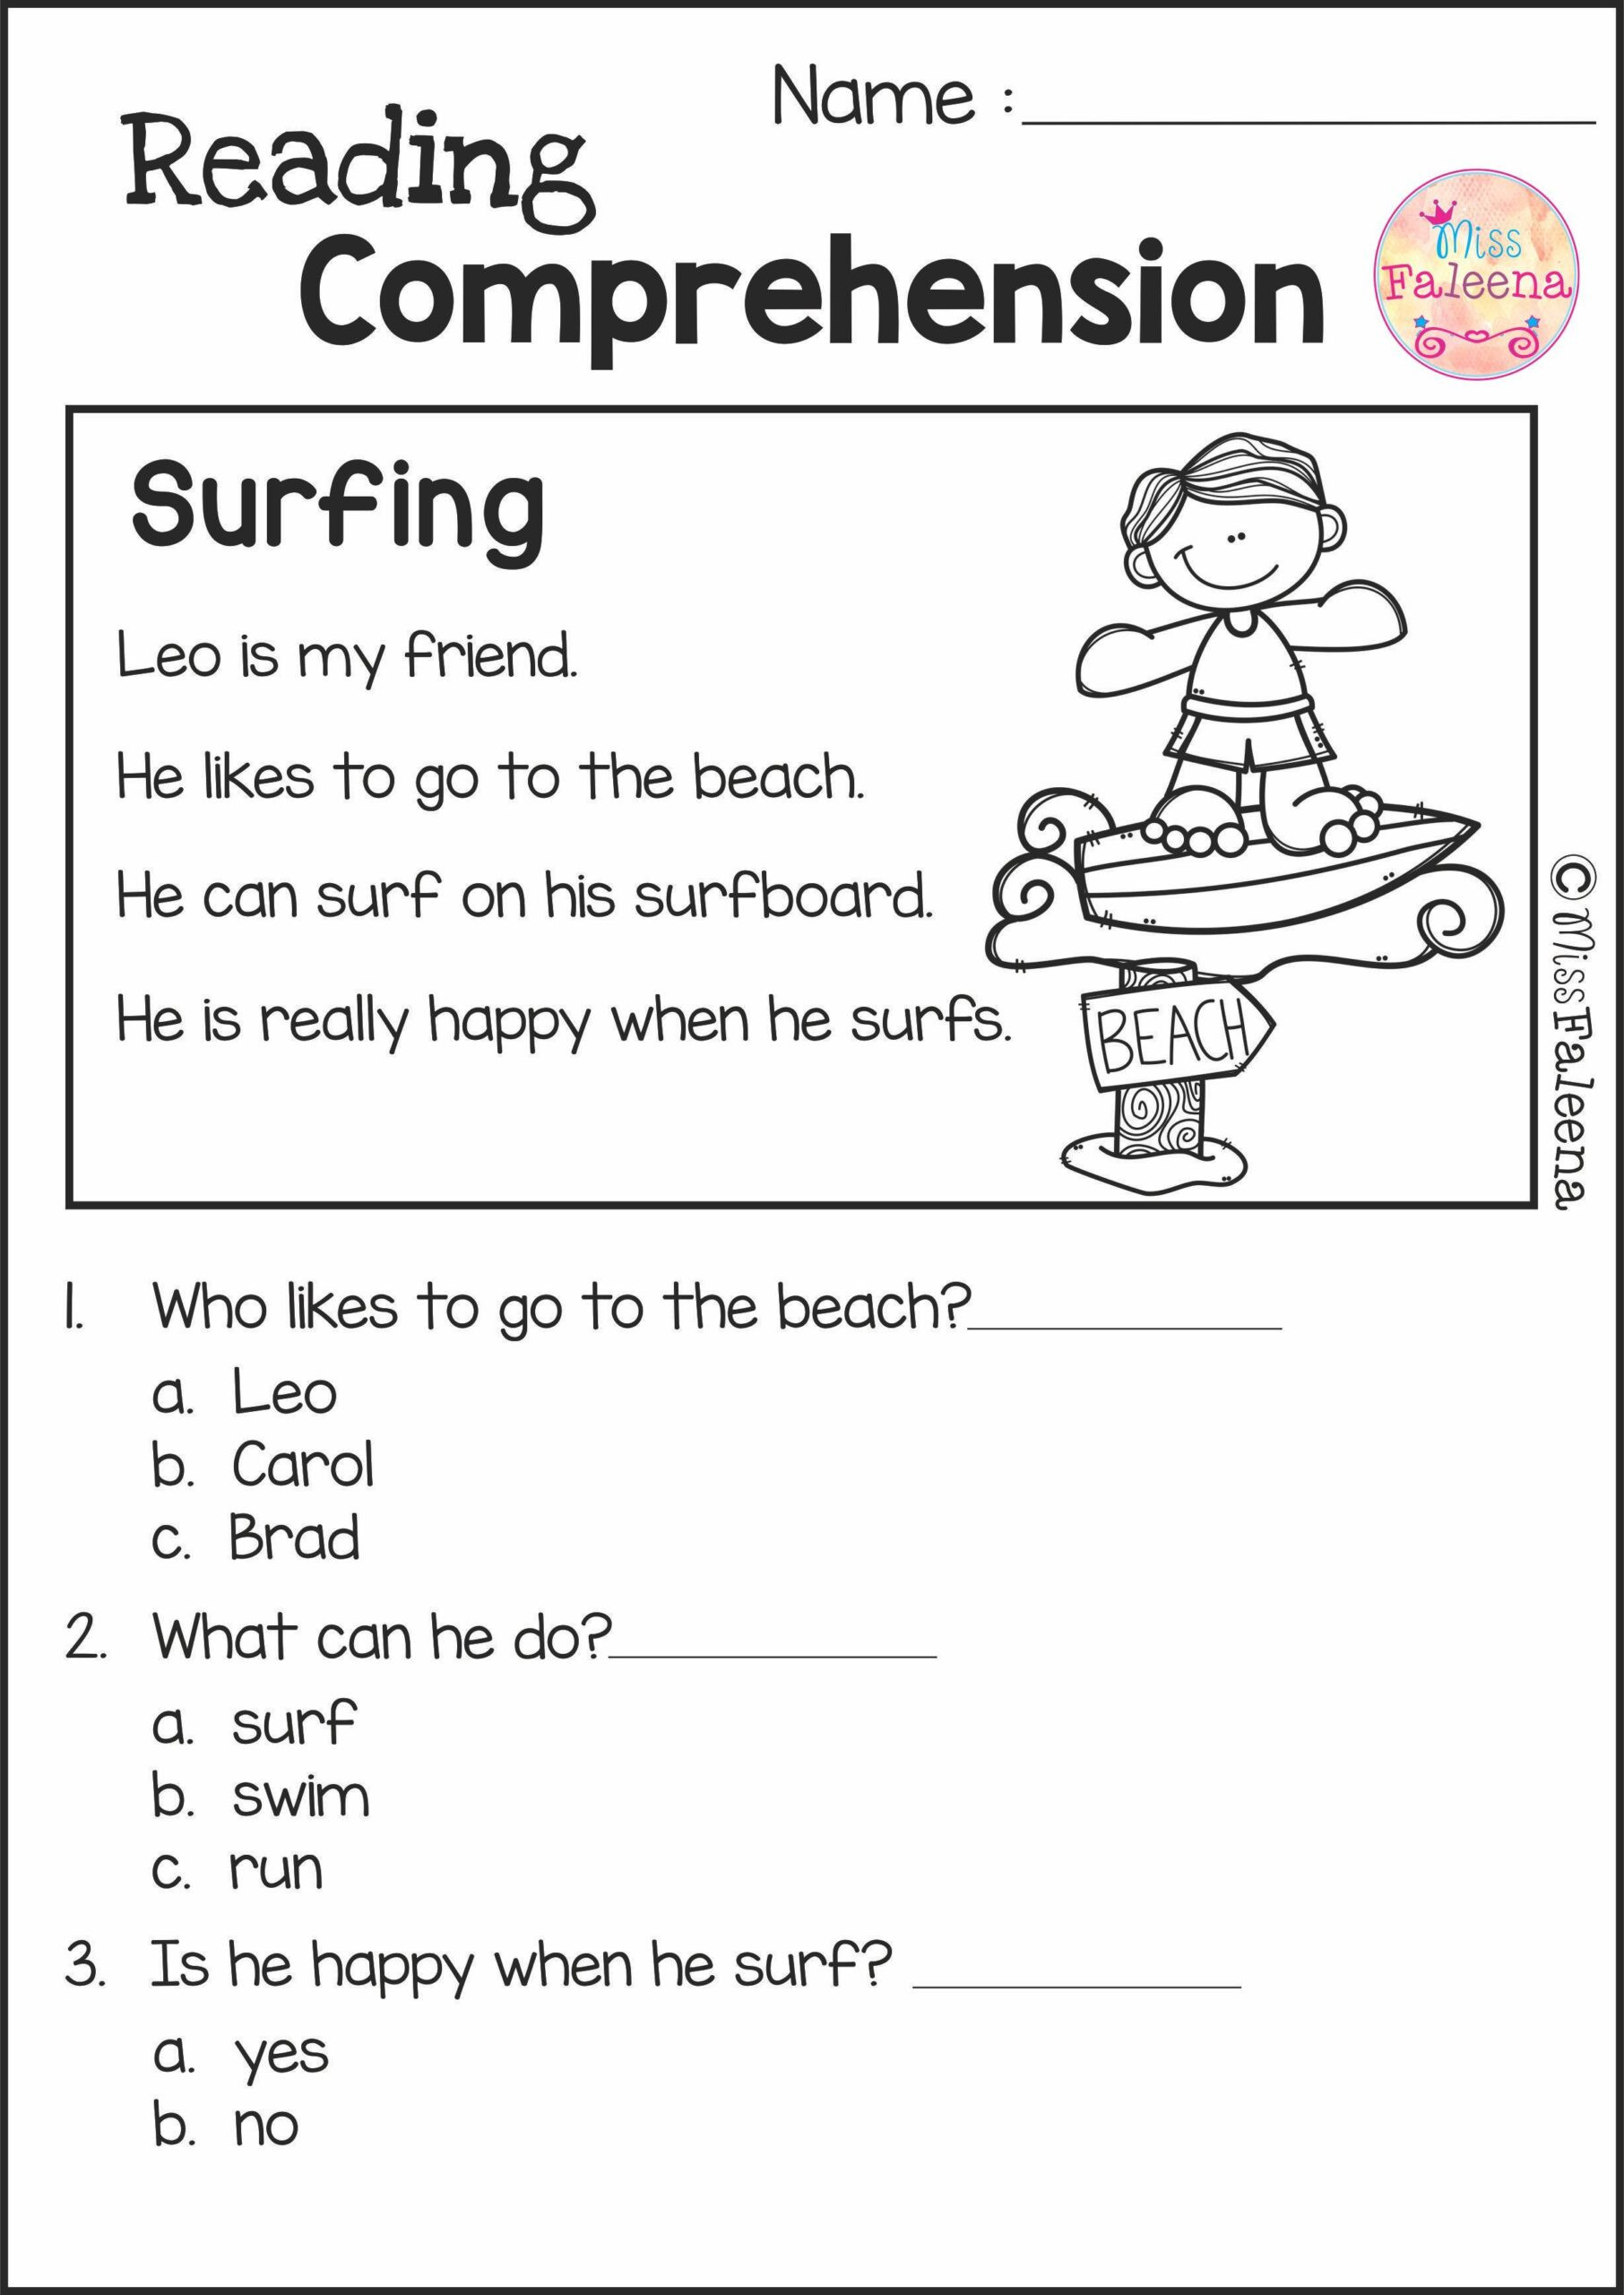 Dialogue Worksheets 3rd Grade Free Math Sheets for 5th Grade Third Grade Vocabulary